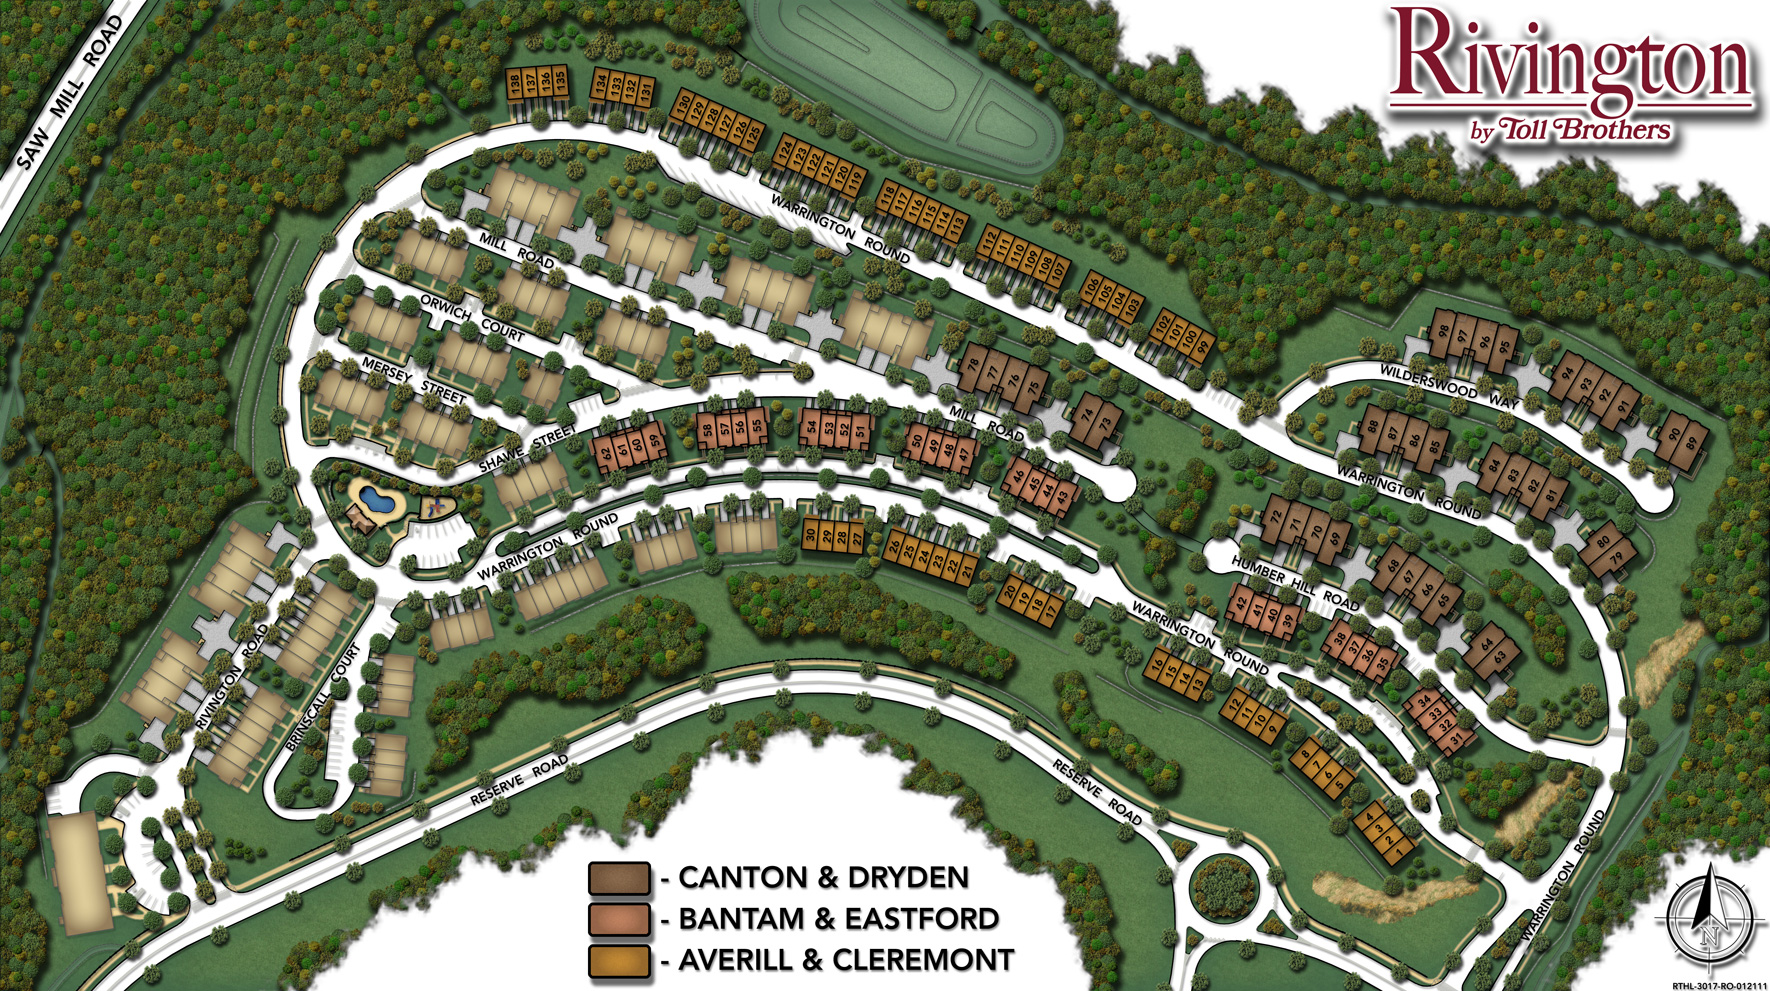 Rivington by toll brothers the hills collection site plan for The rivington